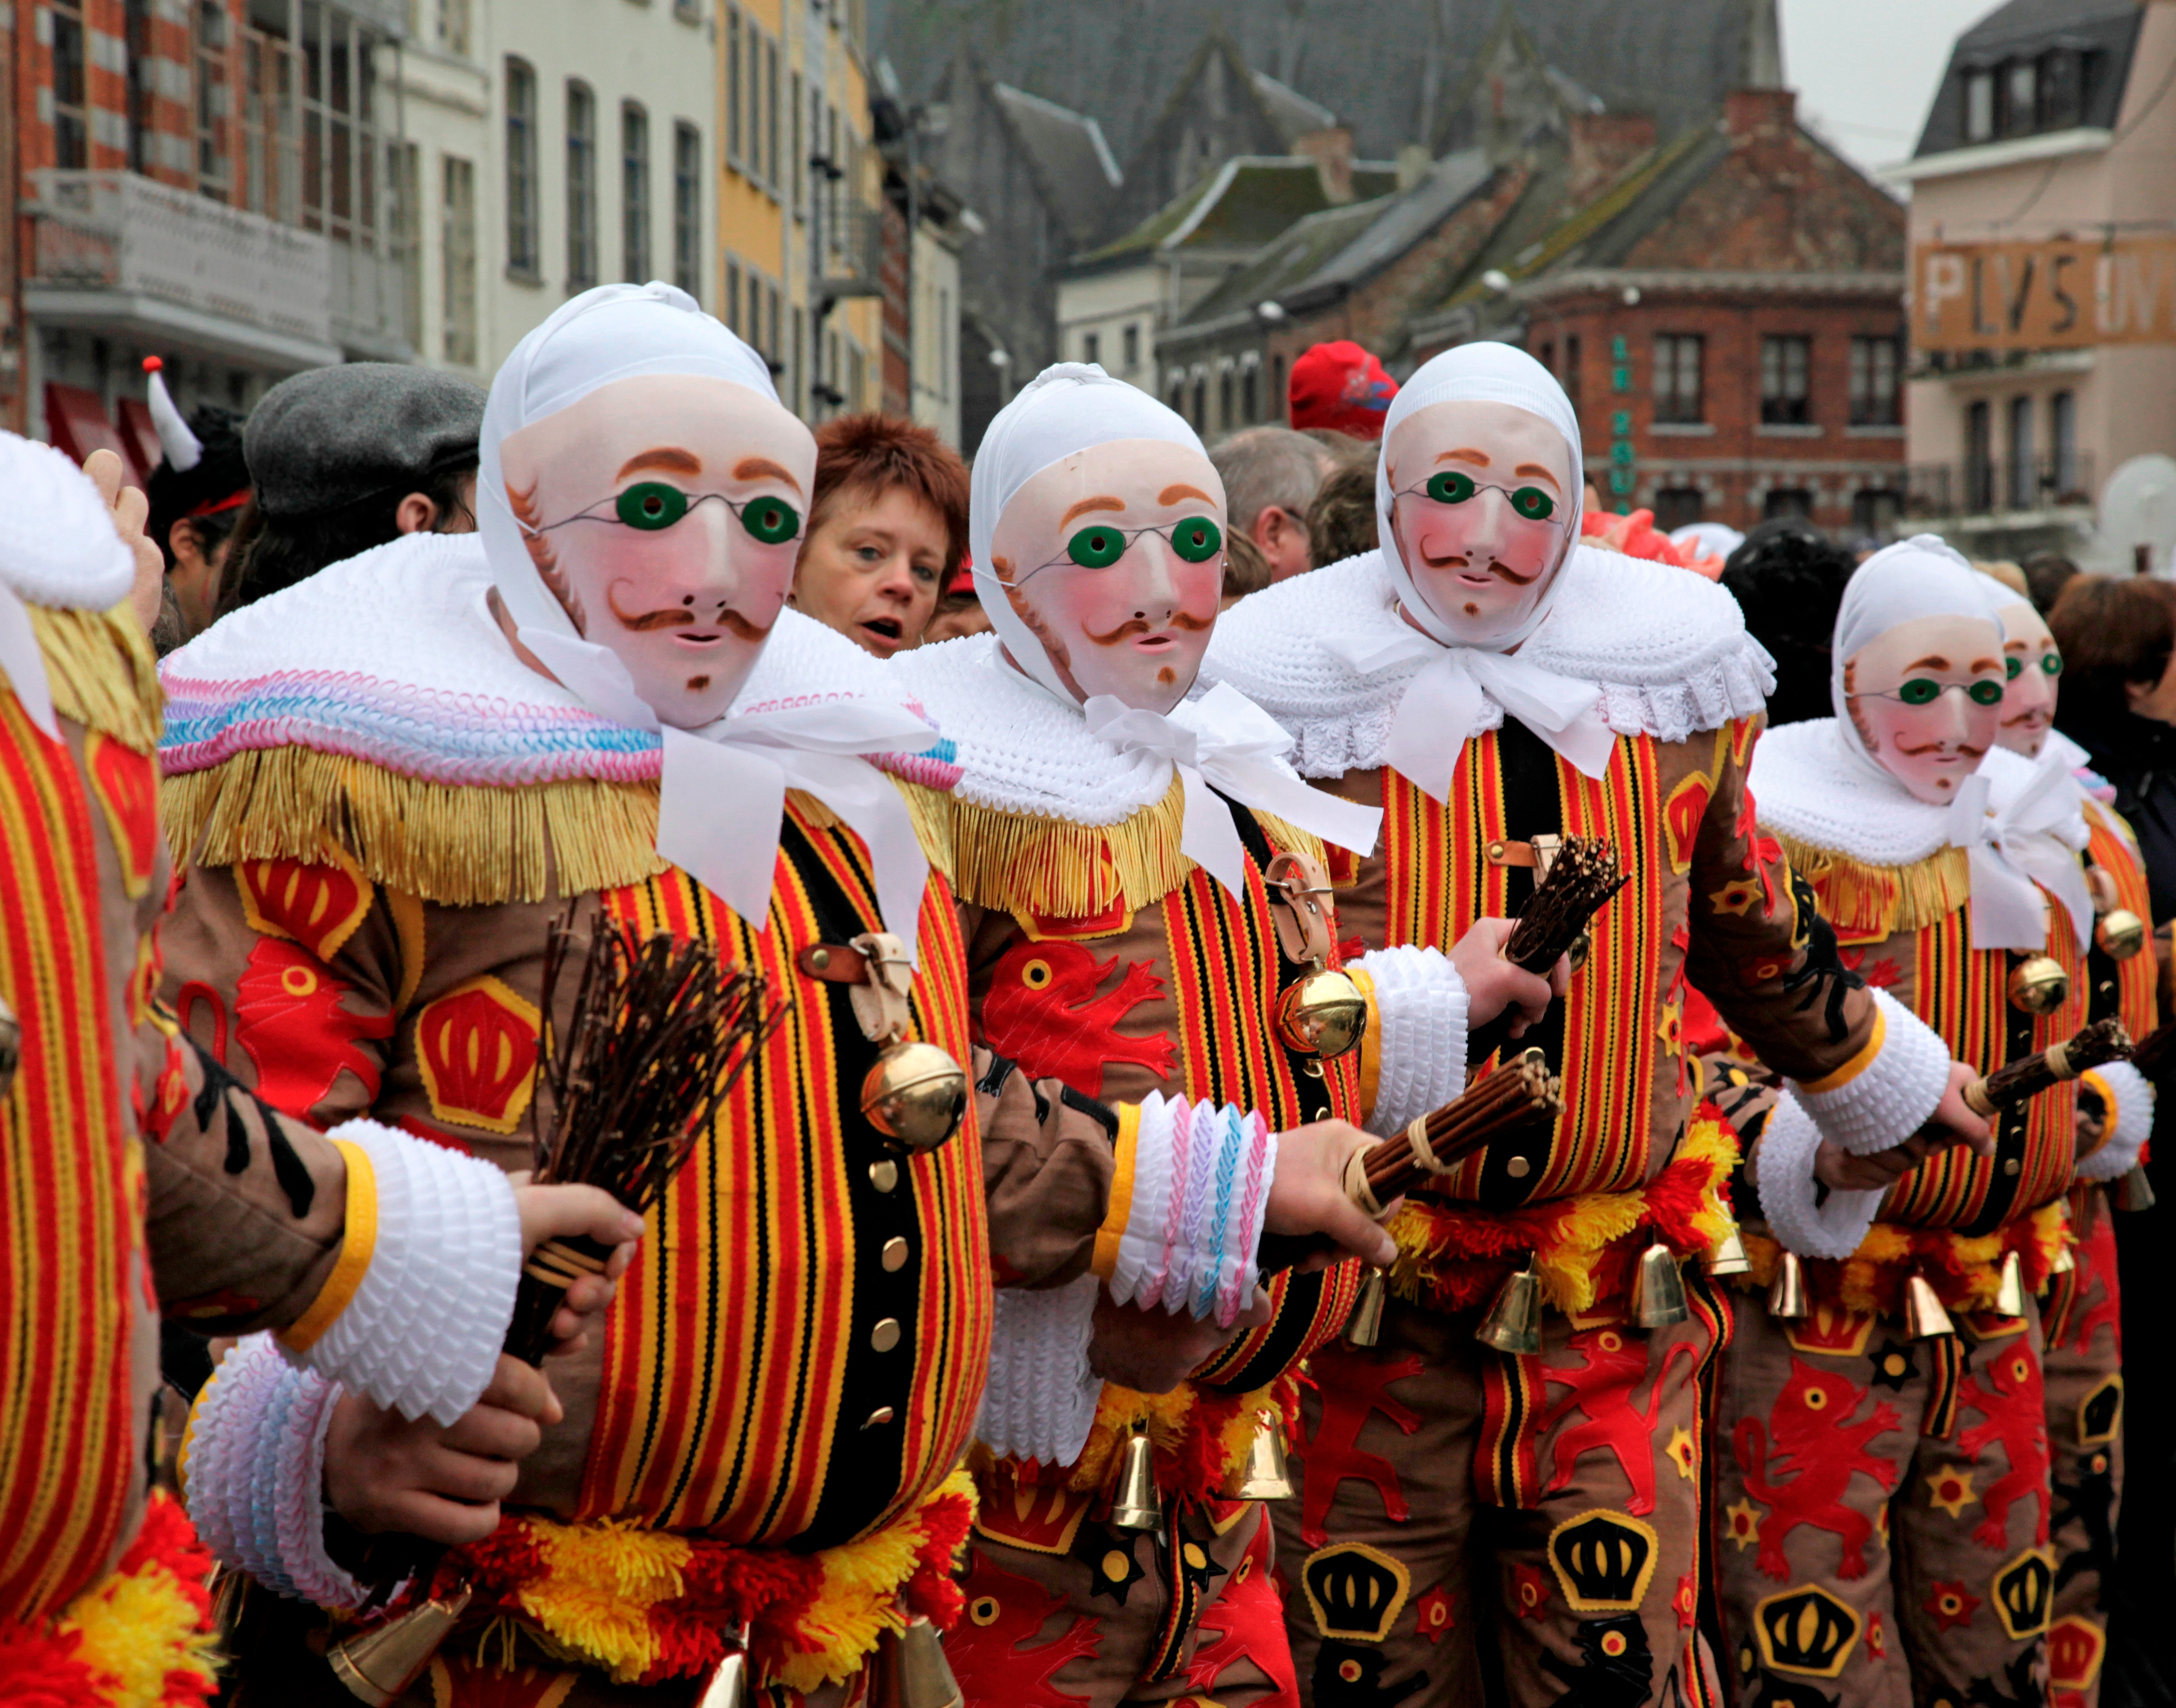 Gilles in costume at the Carnaval de Binche.